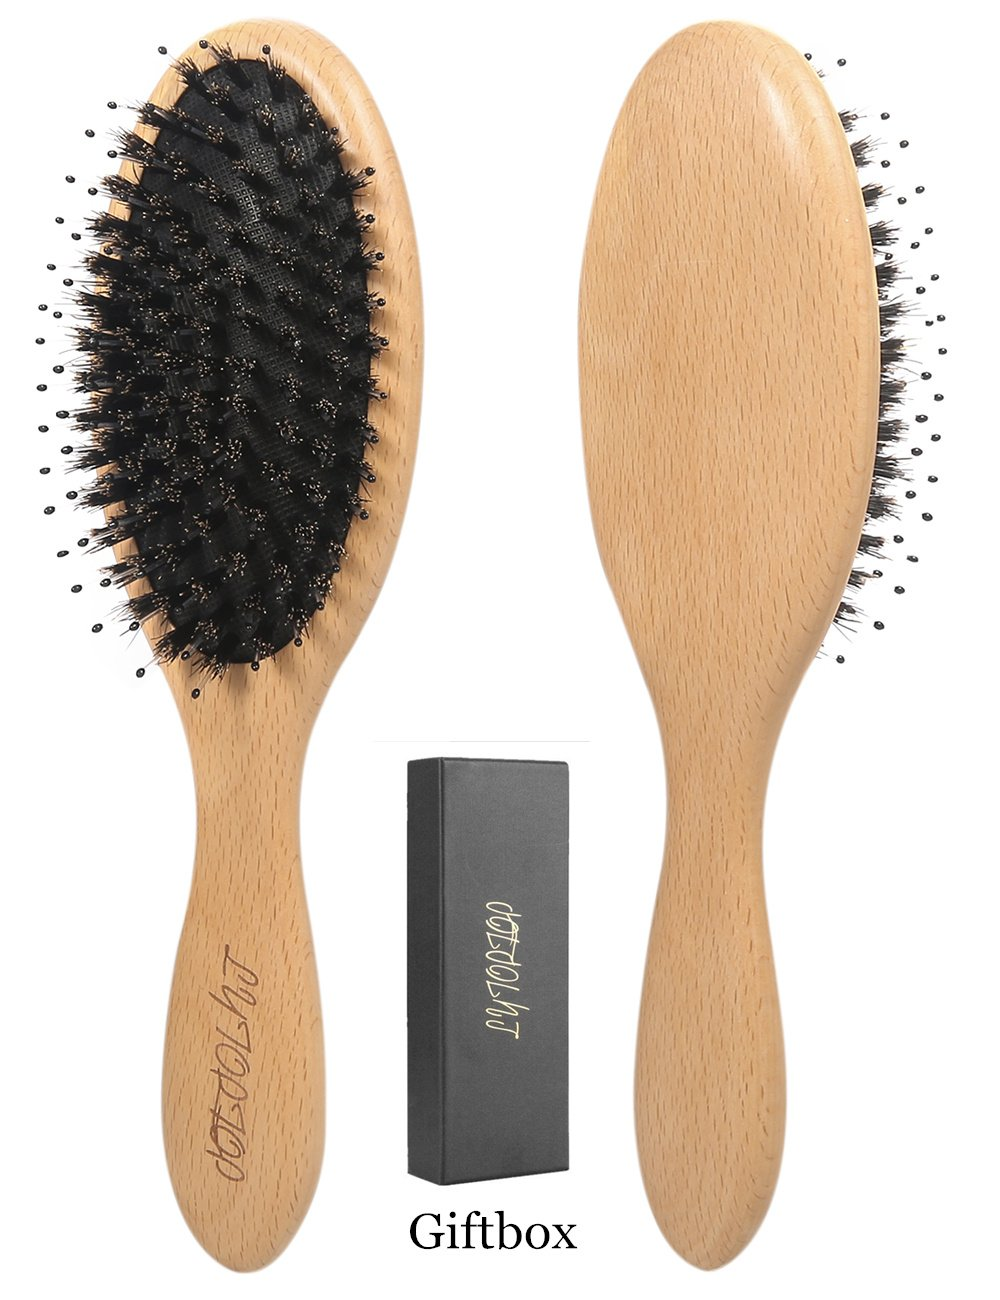 LYTOPTOP Boar Bristle Hair Brushes for Women and Men-Natural Beech Wooden Paddle Hairbrush Anti Static Designed to Adds Shine and Improves Hair Texture,Giftbox Inclued